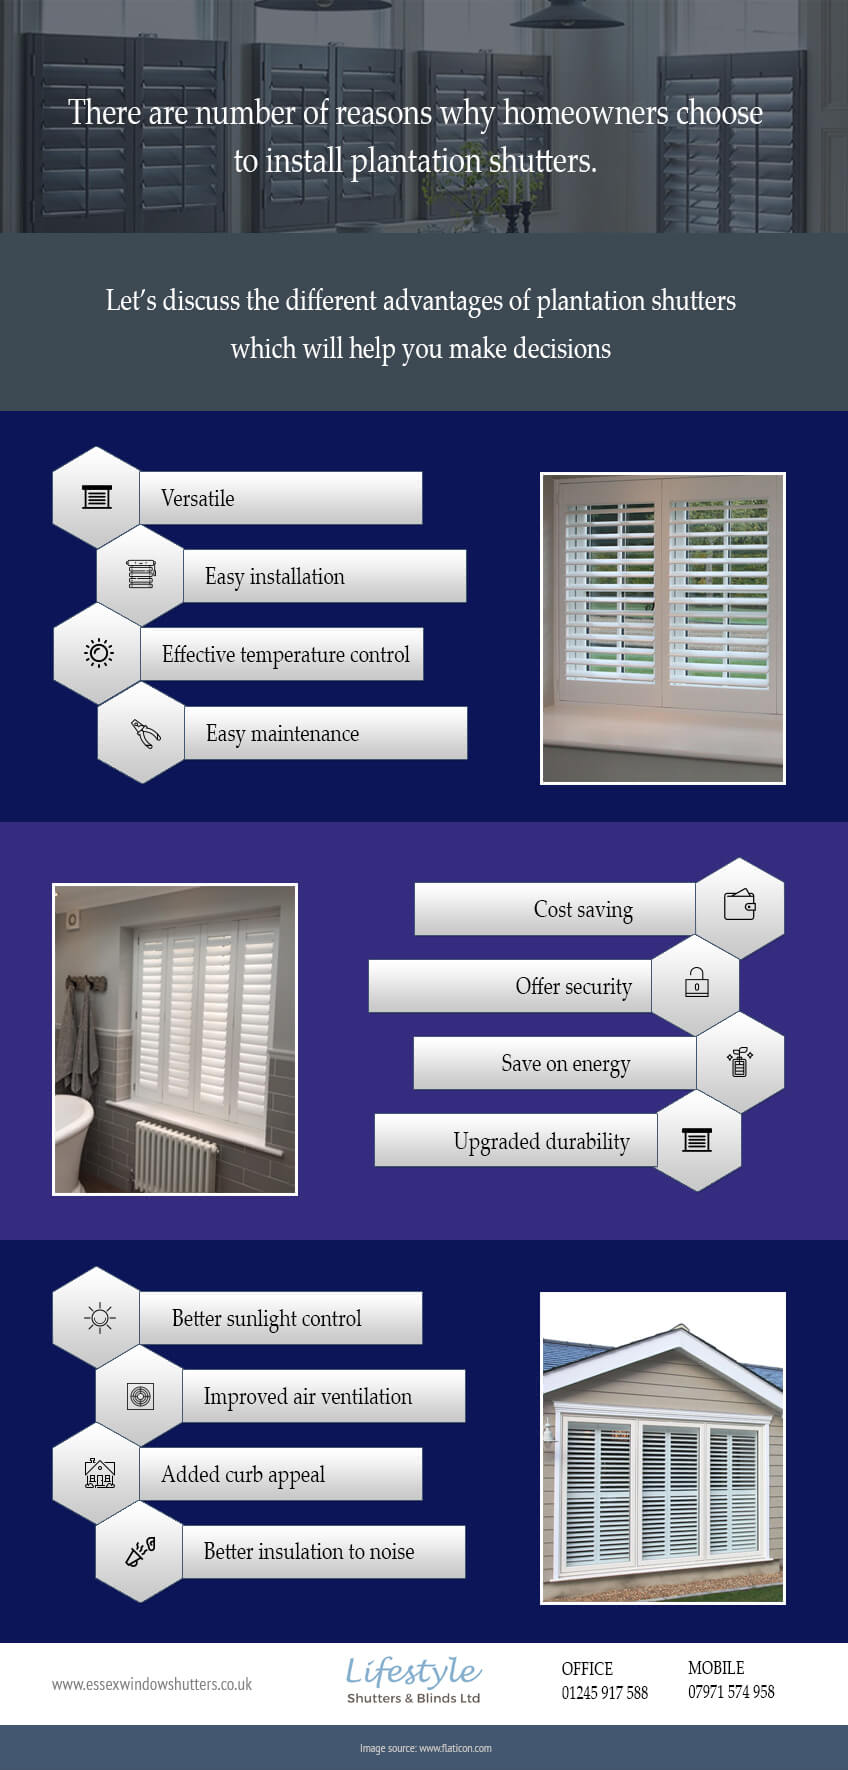 Benefits of plantation shutters